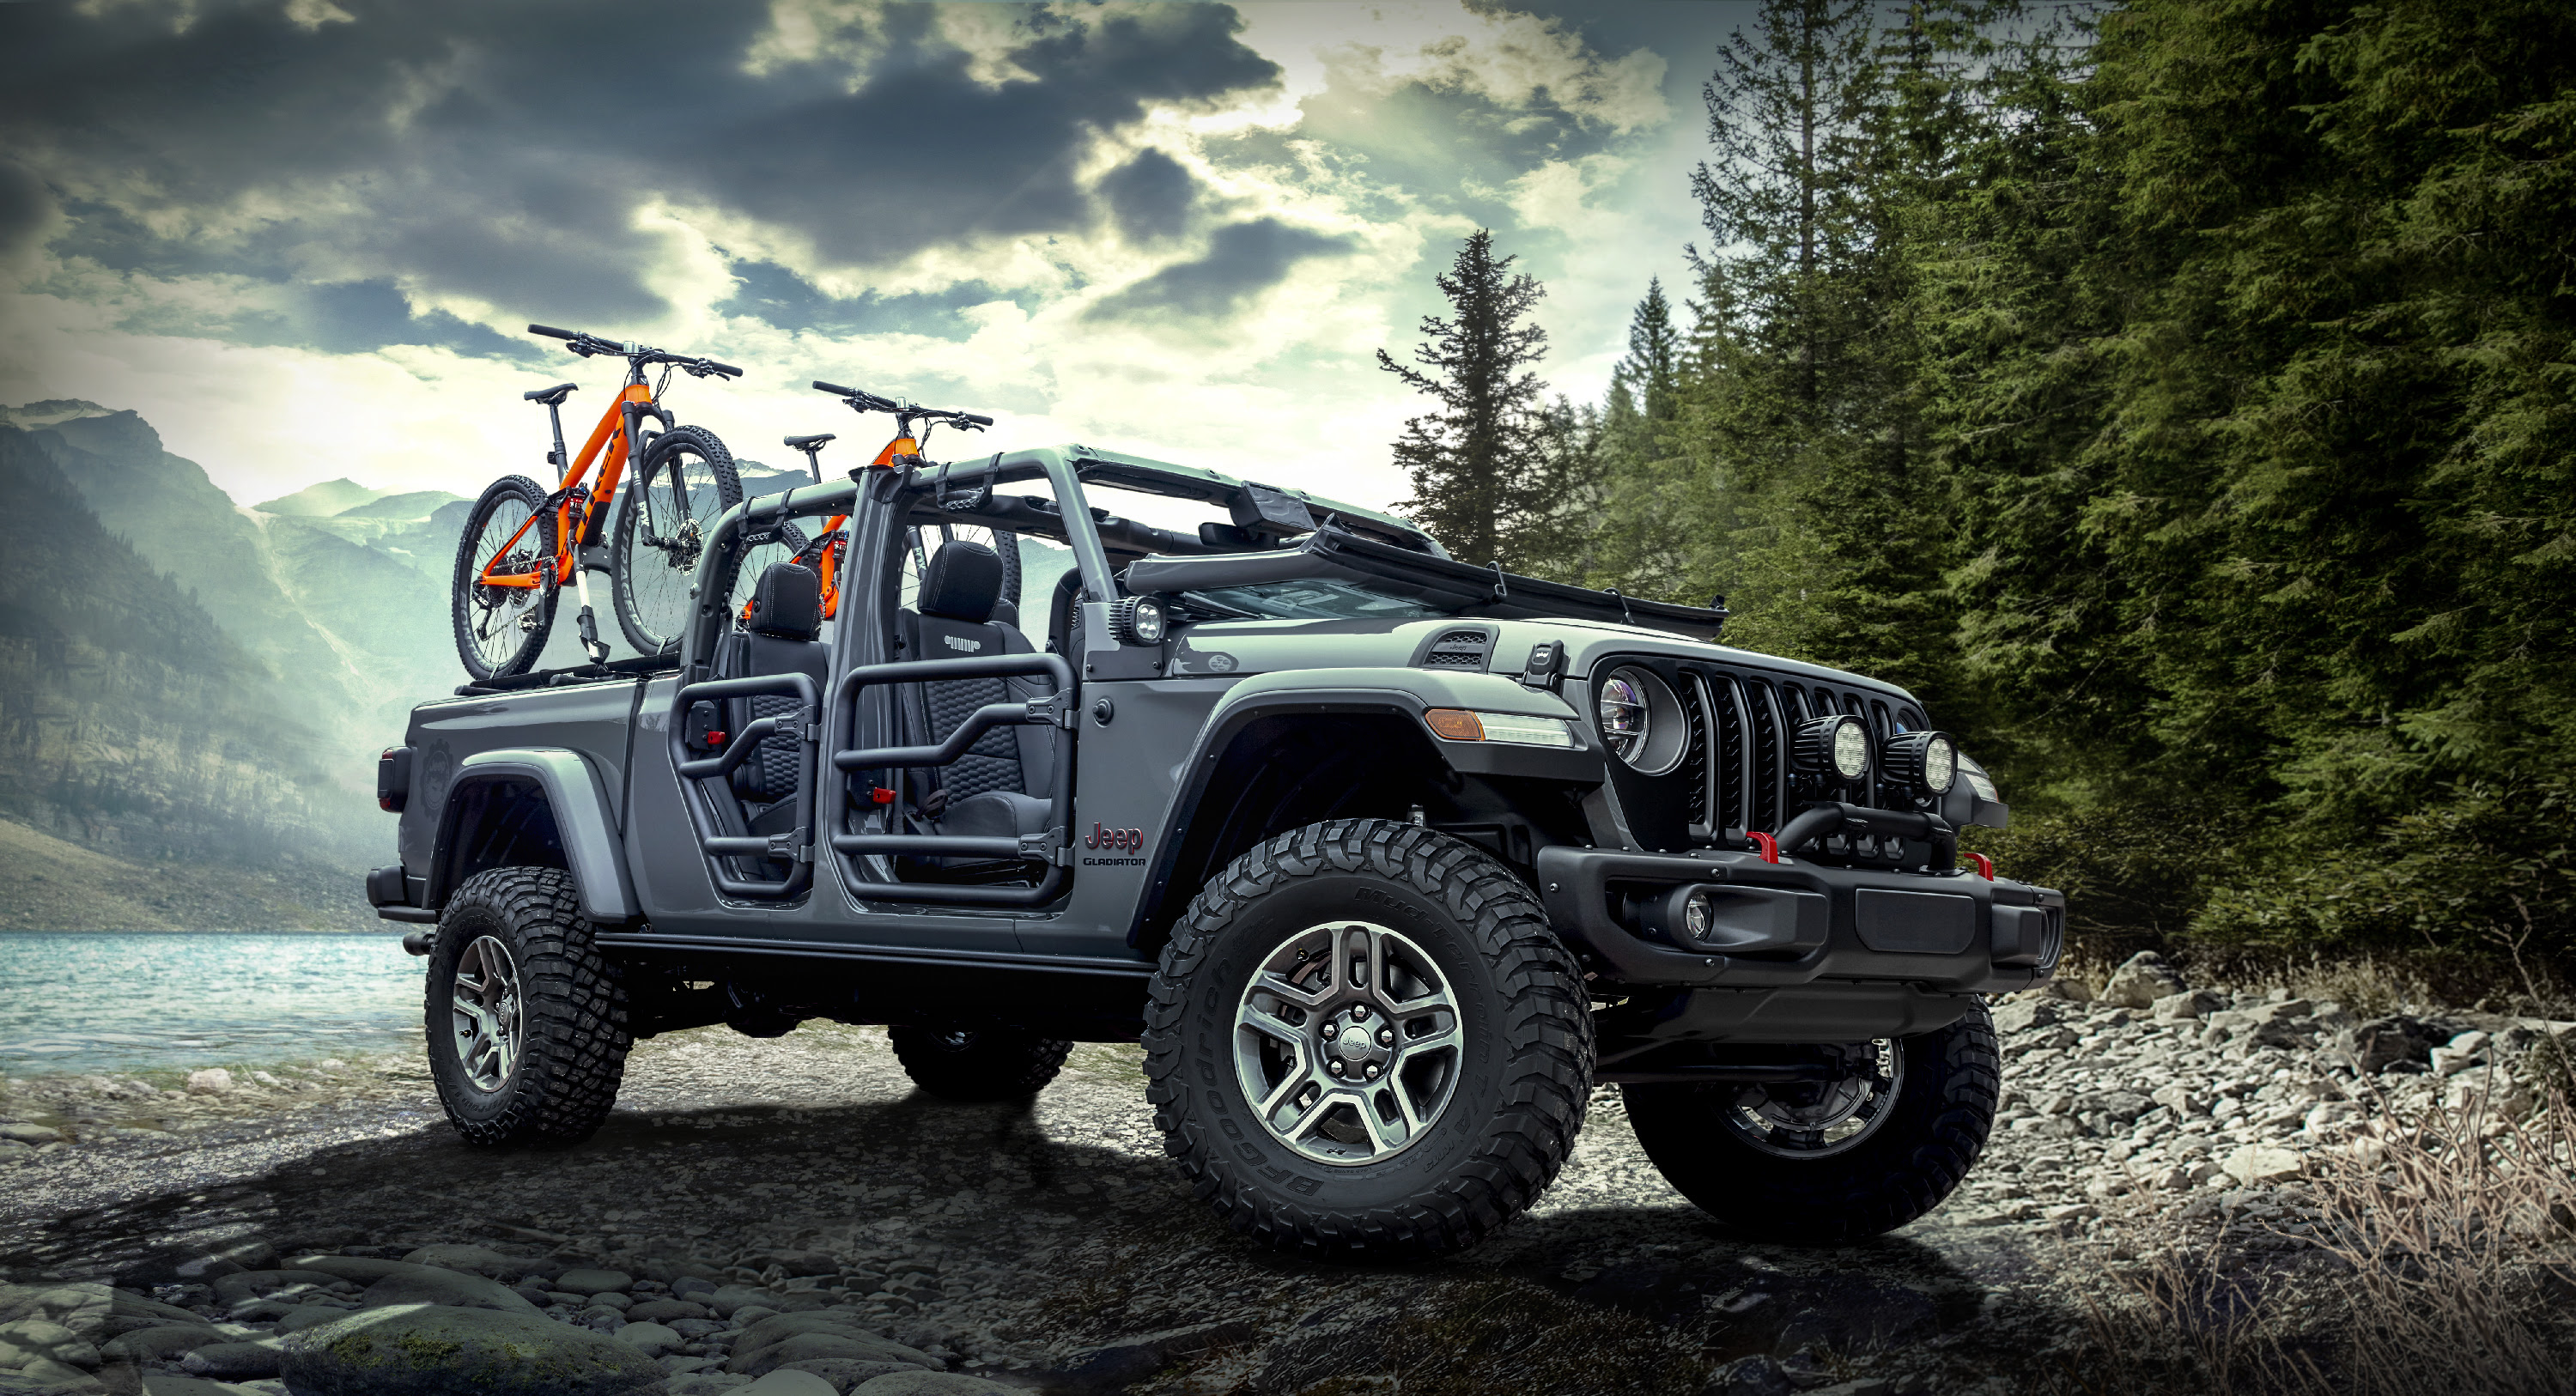 Jeep Gladiator Rubicon Wallpapers Hd Wallpapers